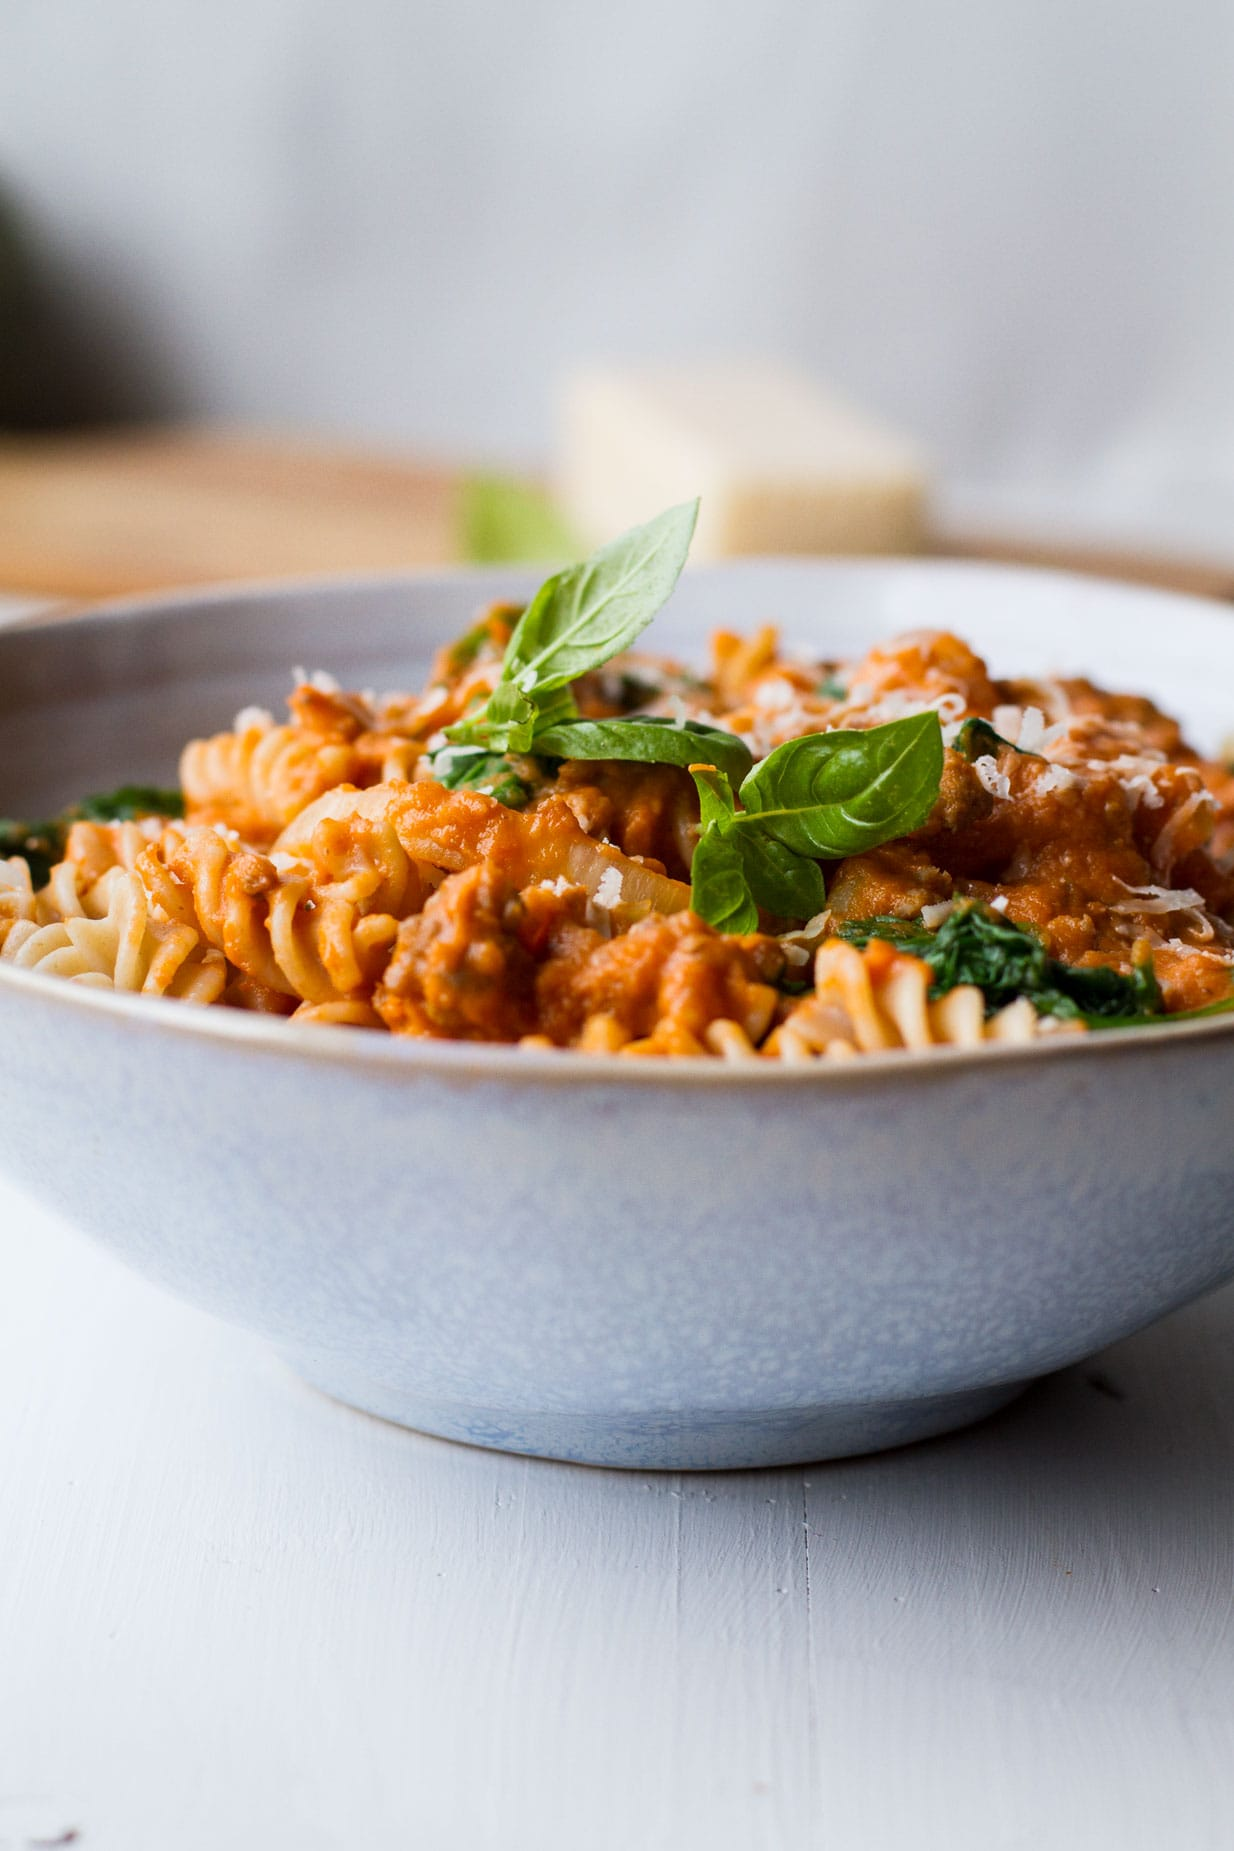 Creamy Parmesan Pumpkin Pasta in a blue bowl, garnished with fresh basil.